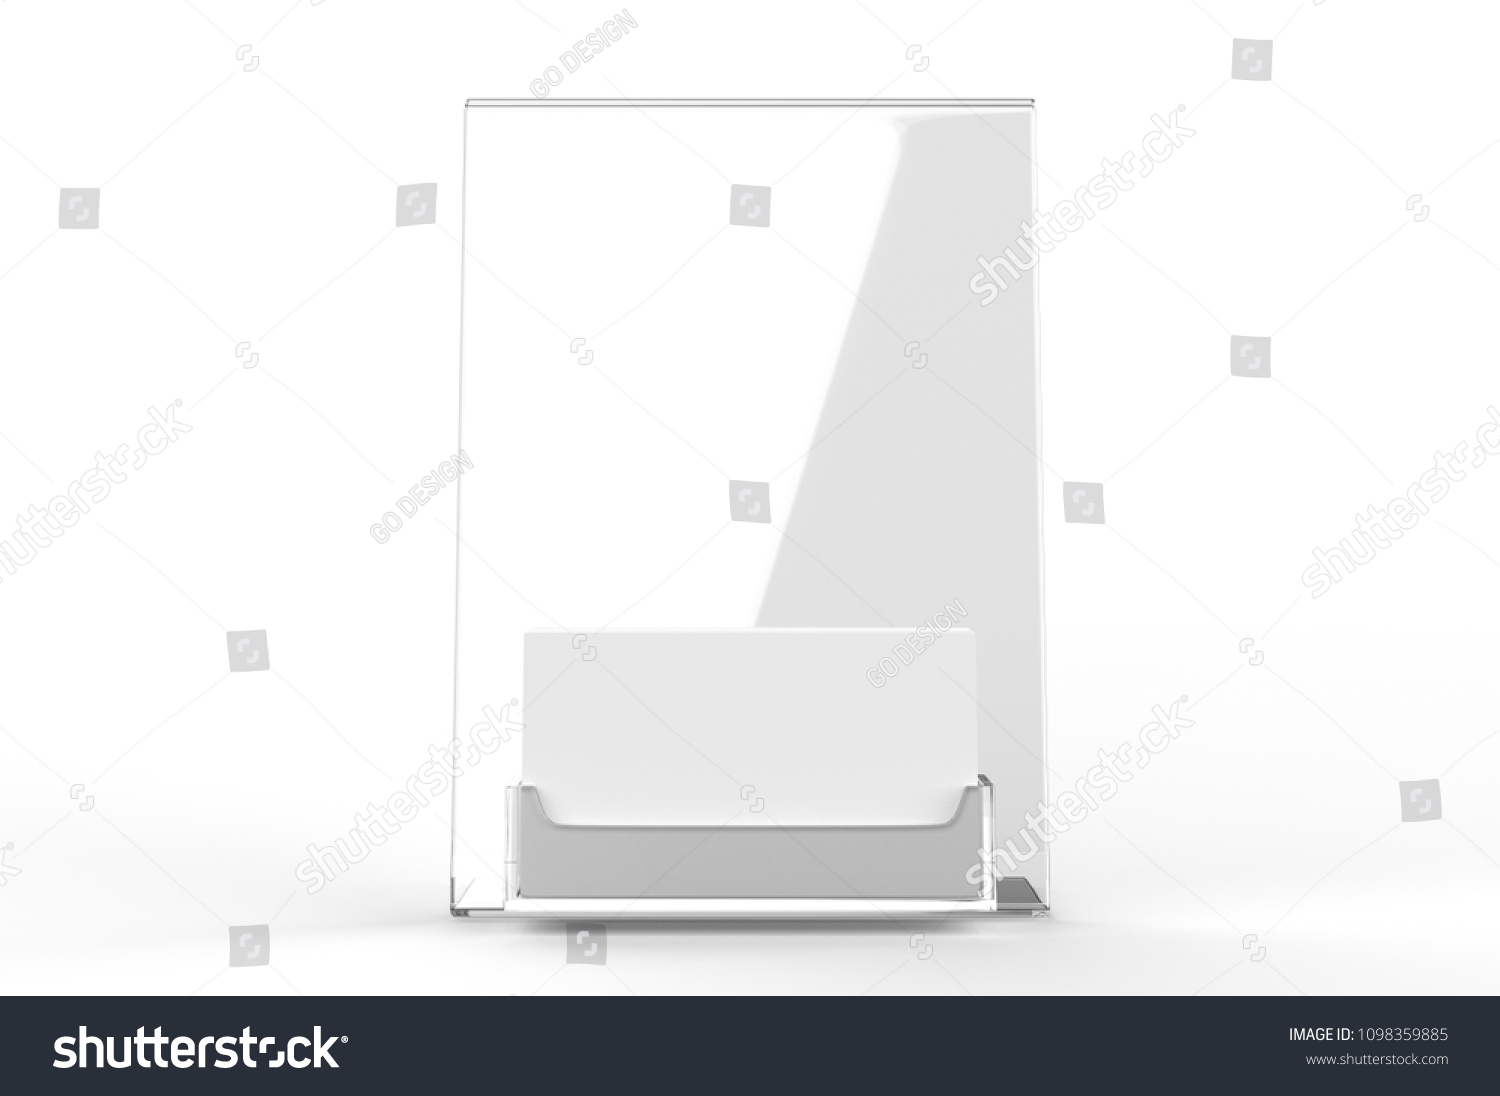 Blank white counter top acrylic business stock illustration blank white counter top acrylic business card display with sign holder 3d render illustration reheart Images